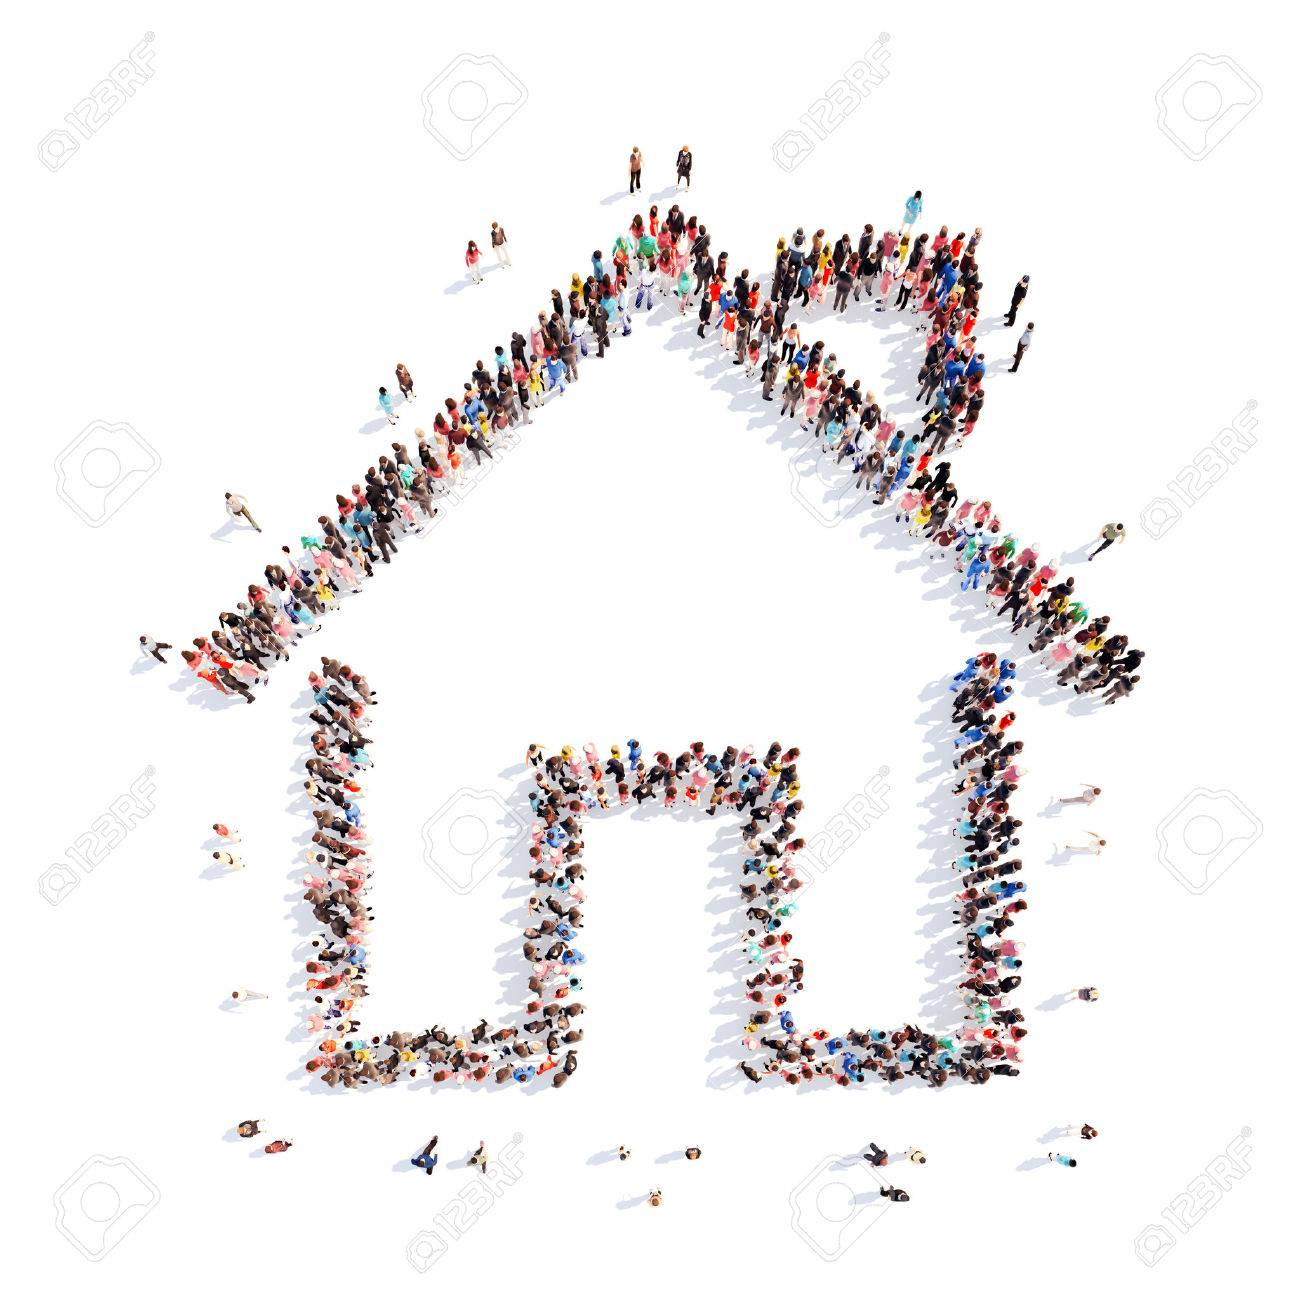 A large group of people in the shape of a house. Isolated, white background. - 40574344